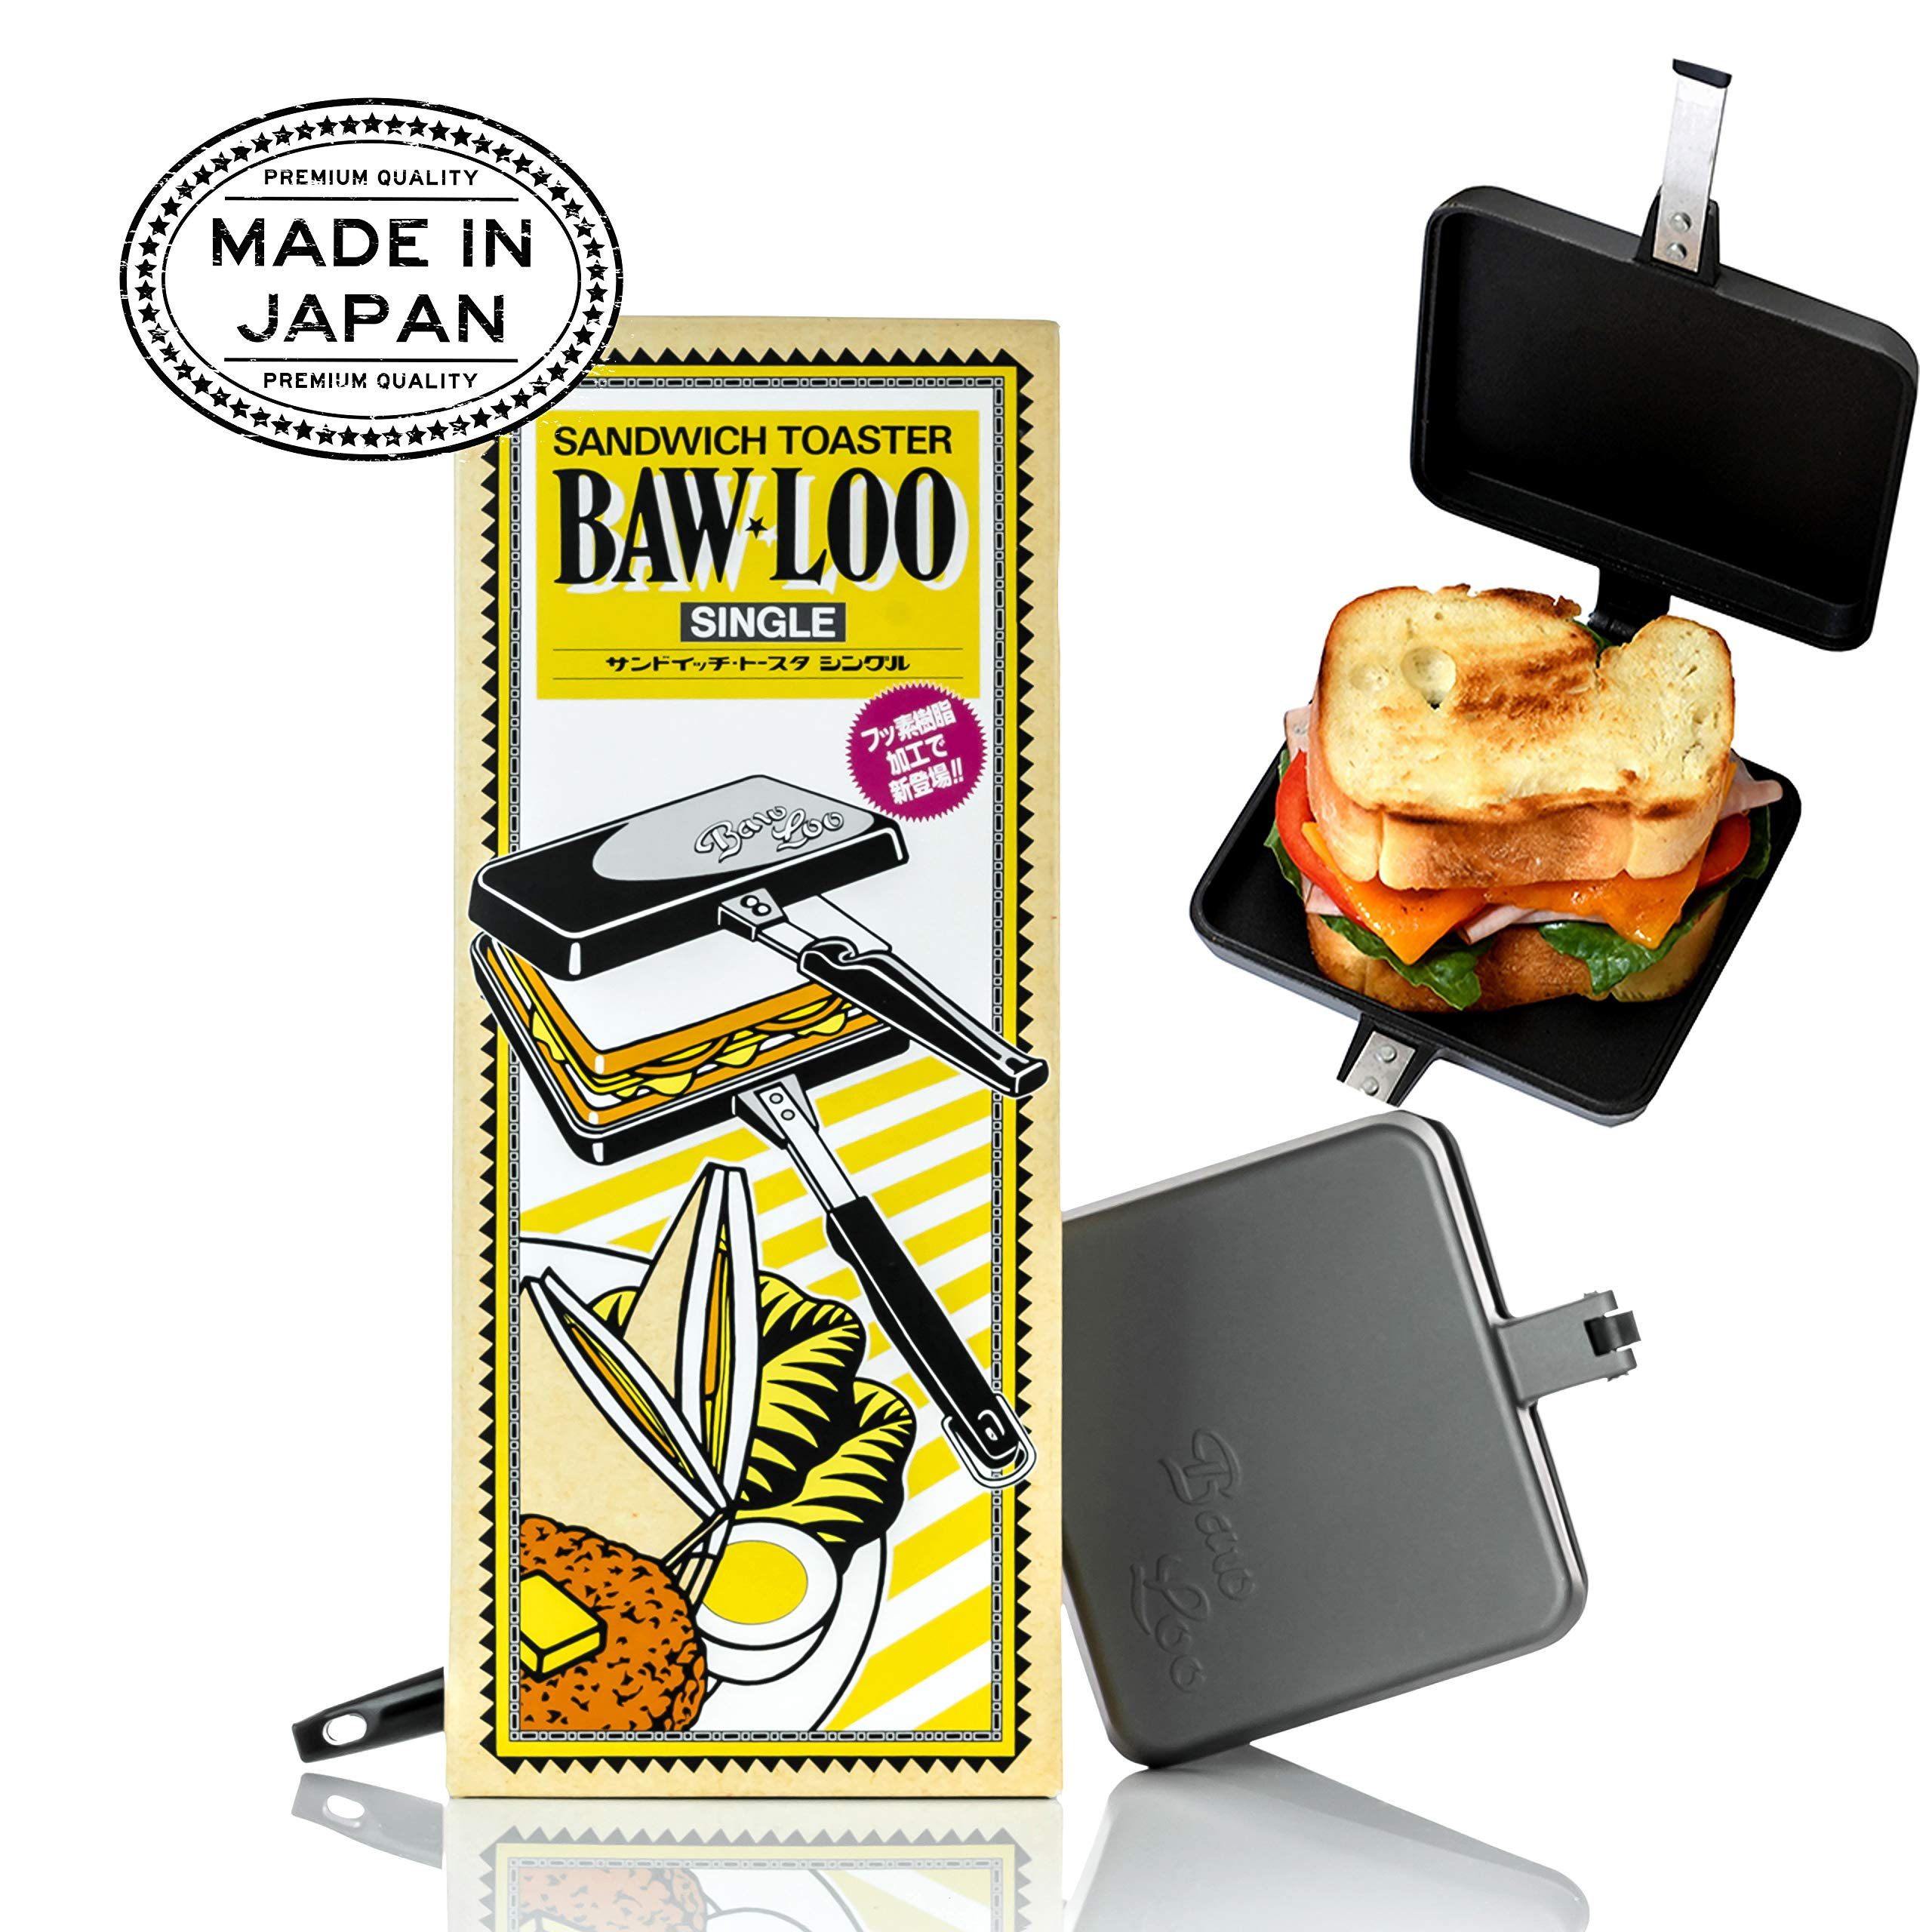 Stove Top Grilled Cheese and Panini Maker - Made in Japan - Featured as Amazon Choice in Japan Marketplace - Over 1000s 5 Star Reviews - Natural Color Tote Included